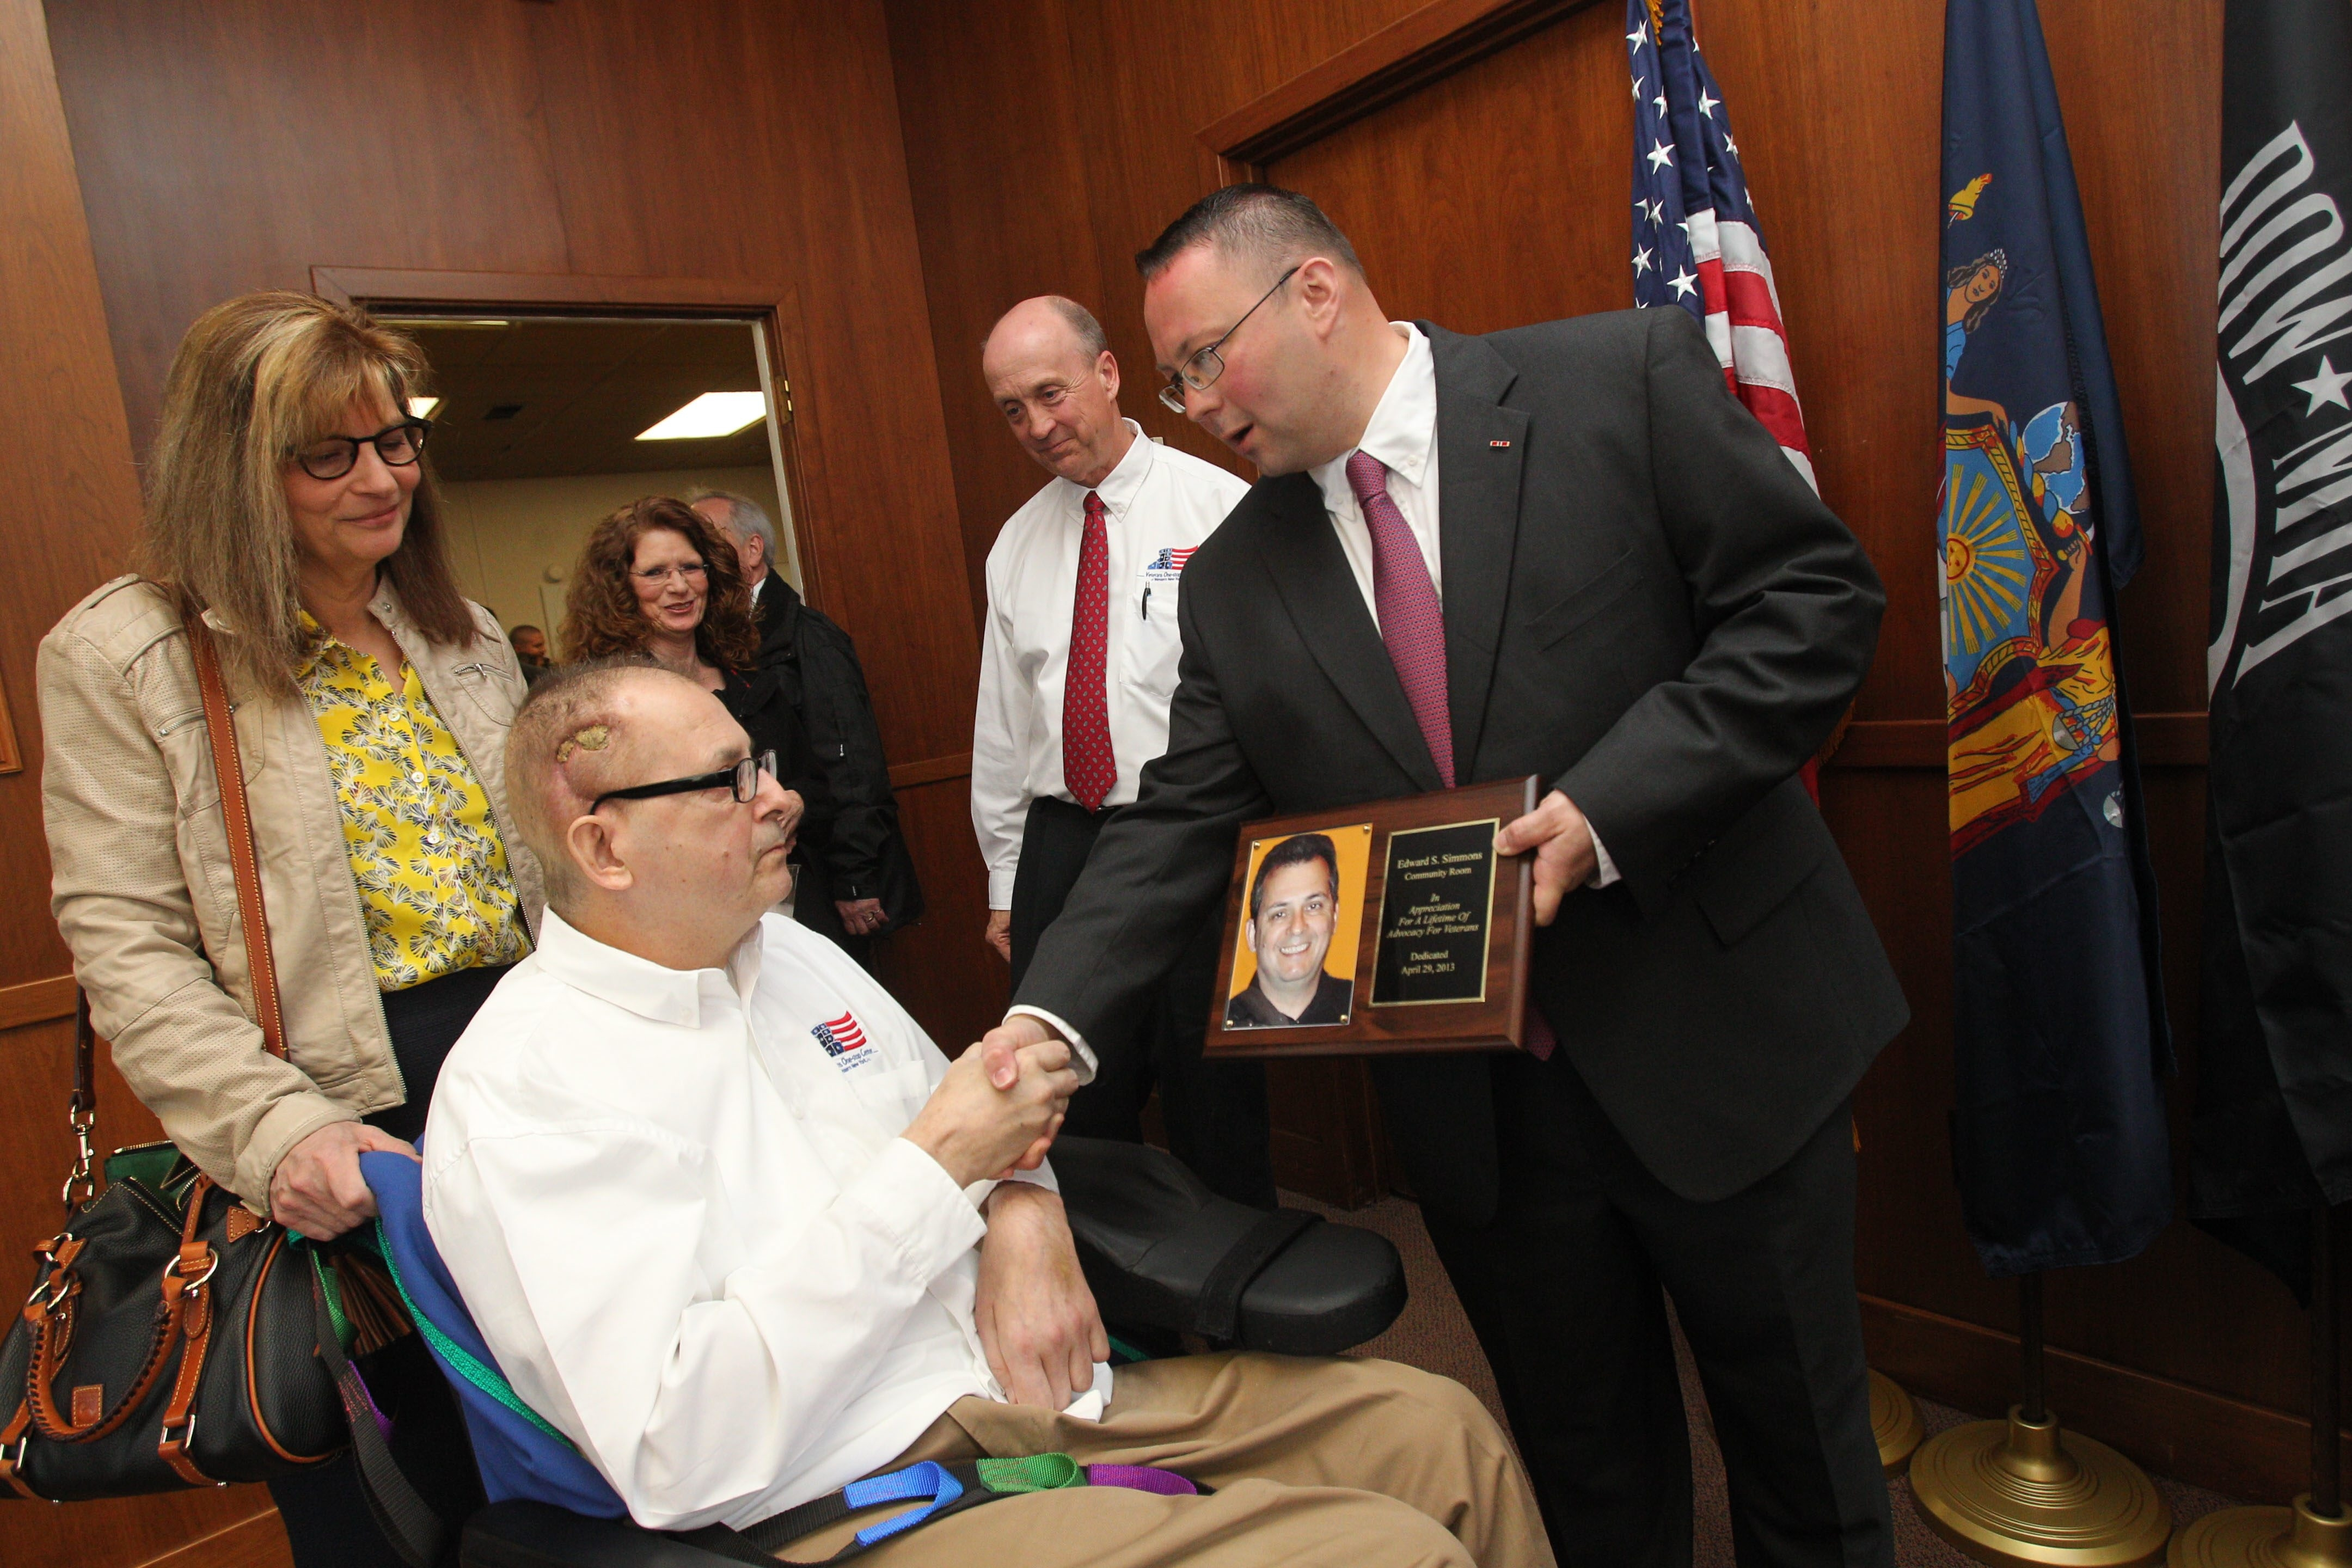 Roger L. Woodworth, right, president and CEO of the Veterans One-stop Center, shows a plaque to Edward Simmons, center, at the center Monday. Simmons' wife, Onda, left, and Harry Schultz look on.